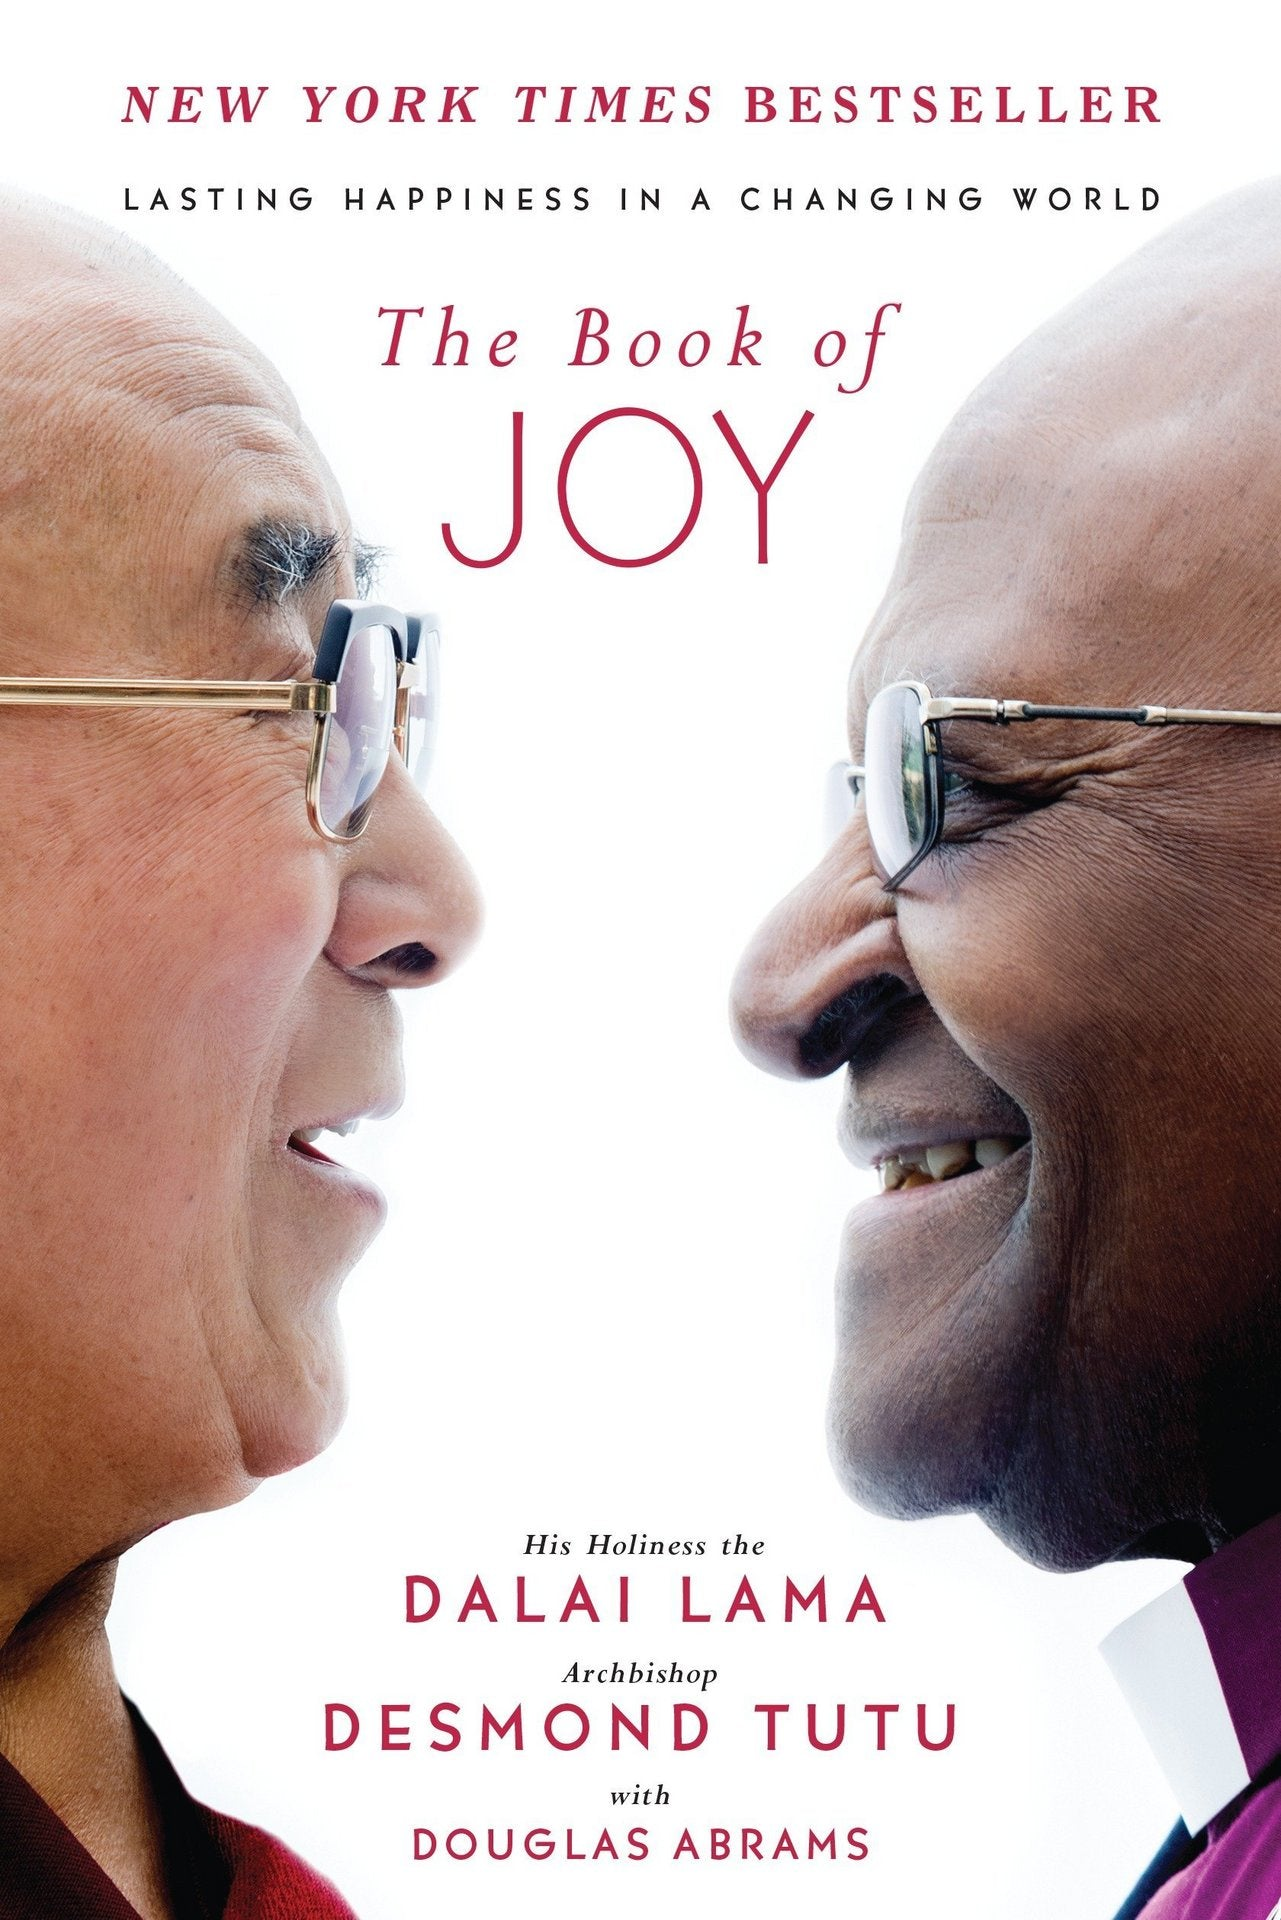 The Book of Joy: Lasting Happiness in a Changing World - WishBasket